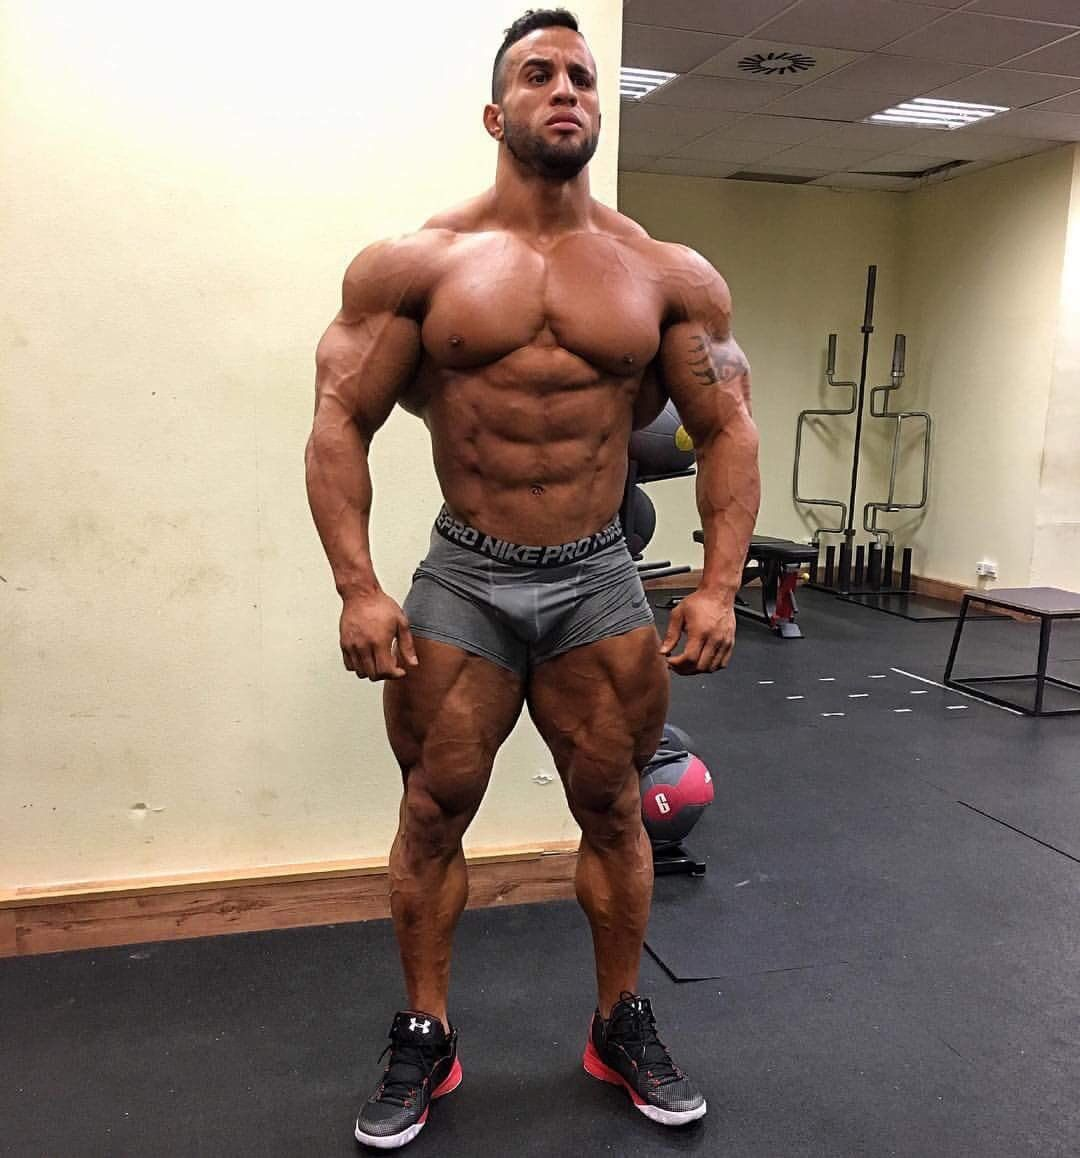 muscleworshipuk on | Bodybuilding | Muscle men, Ripped muscle, Muscle